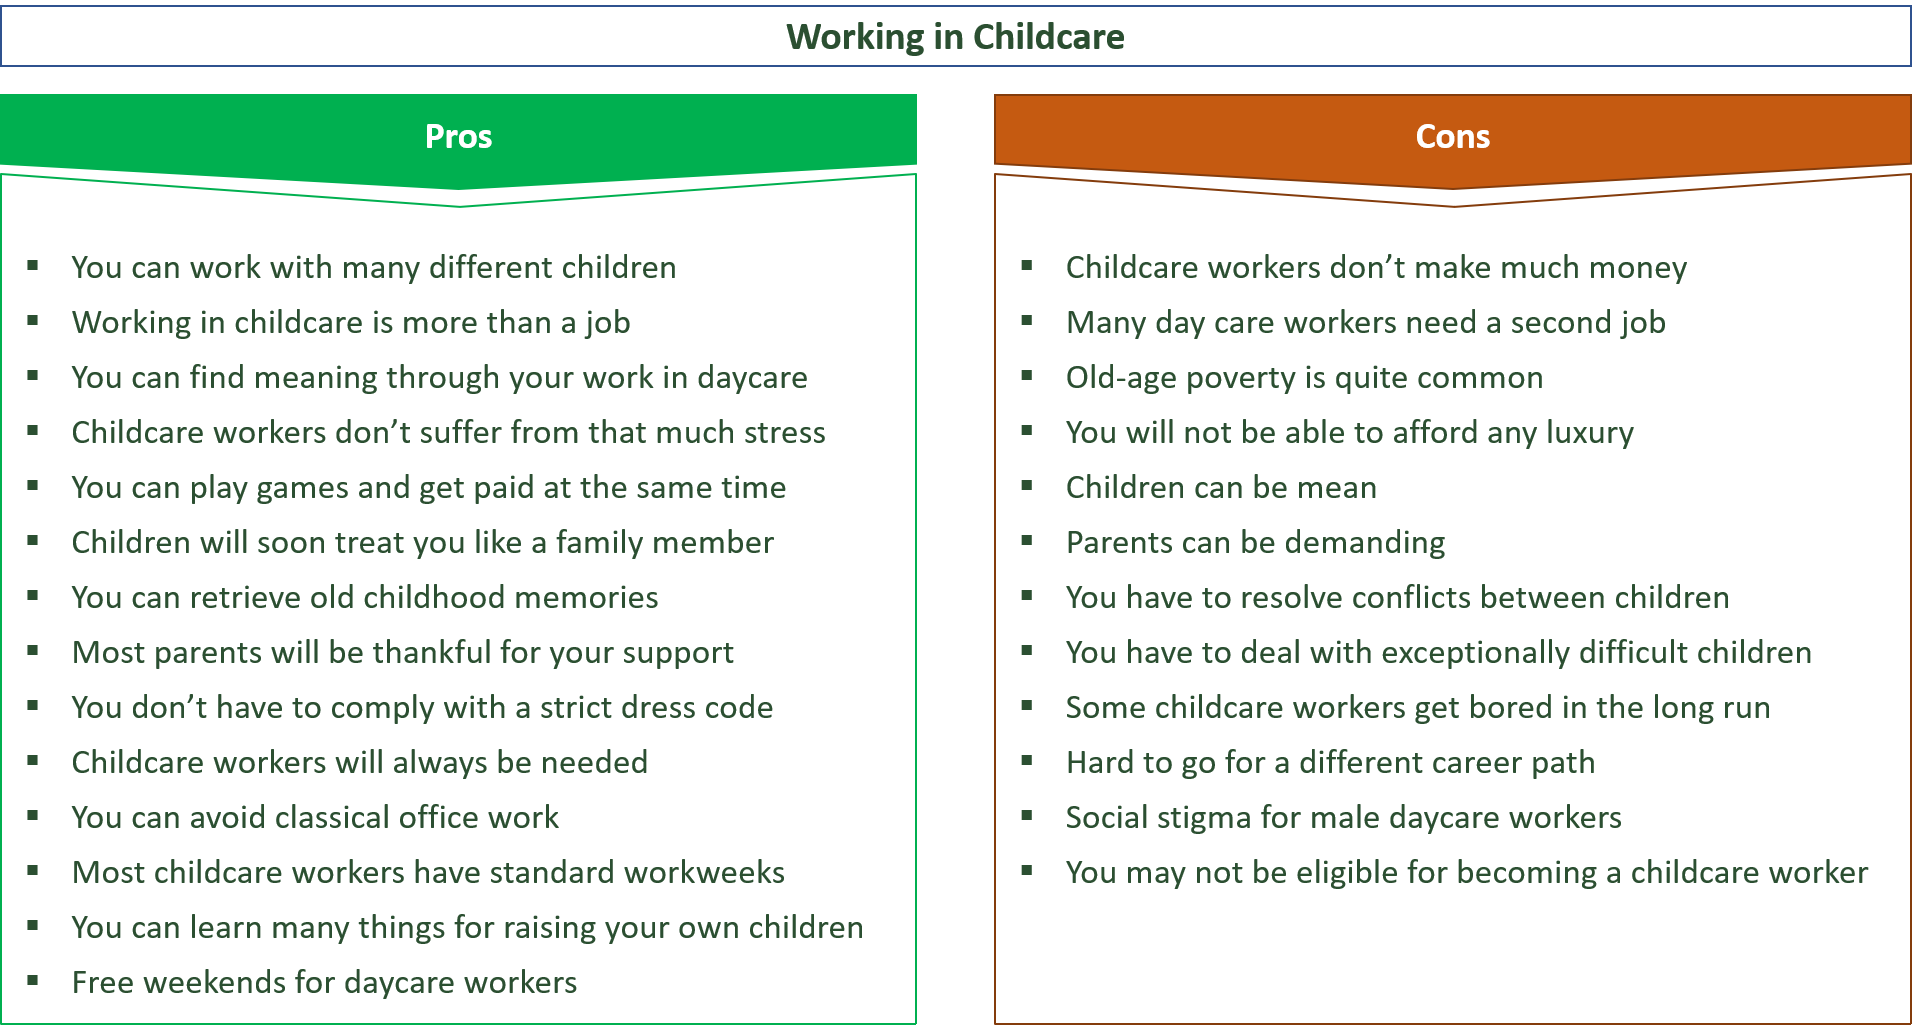 advantages and disadvantages of being a daycare worker